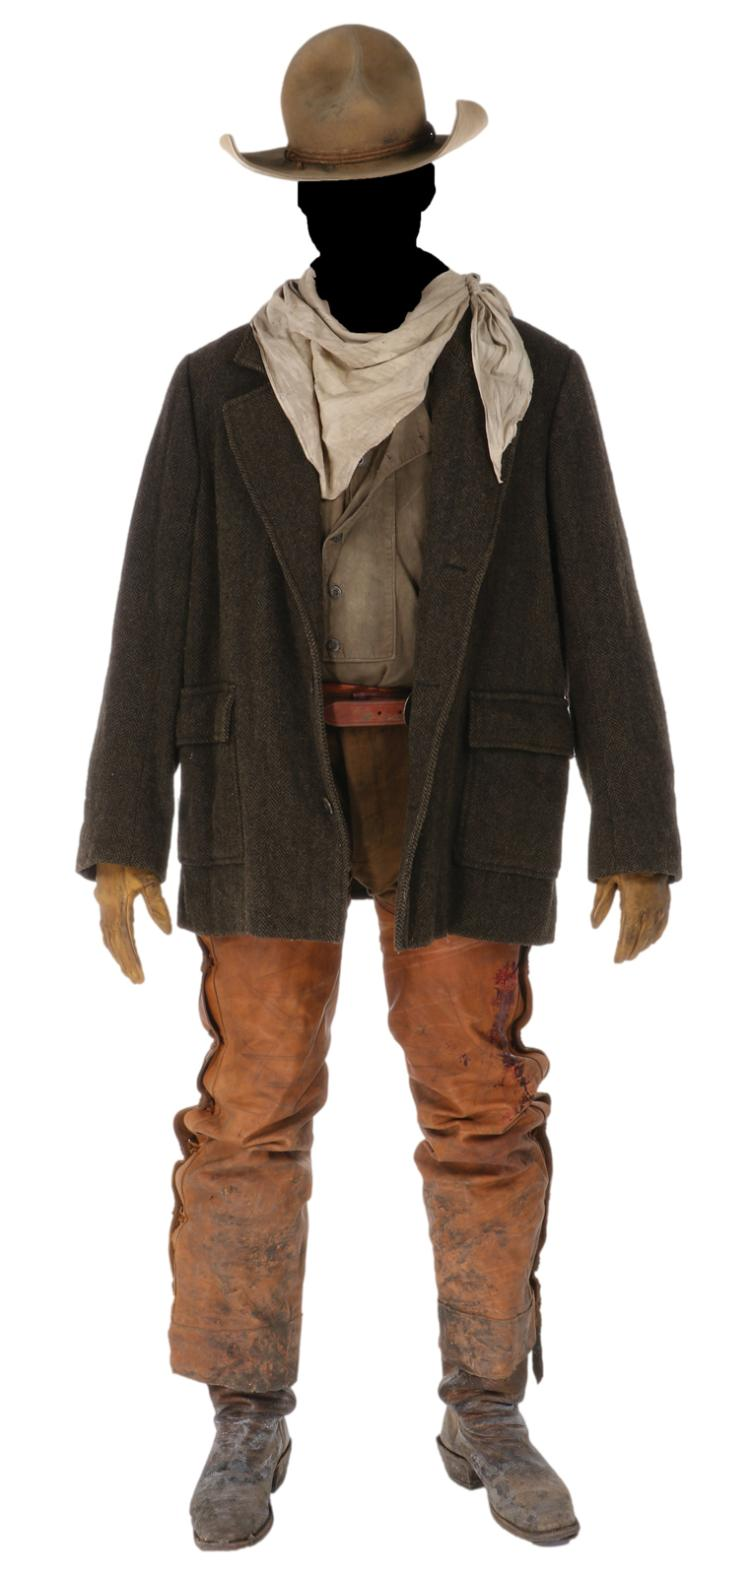 kevin costner quotboss spearmanquot costume from open range